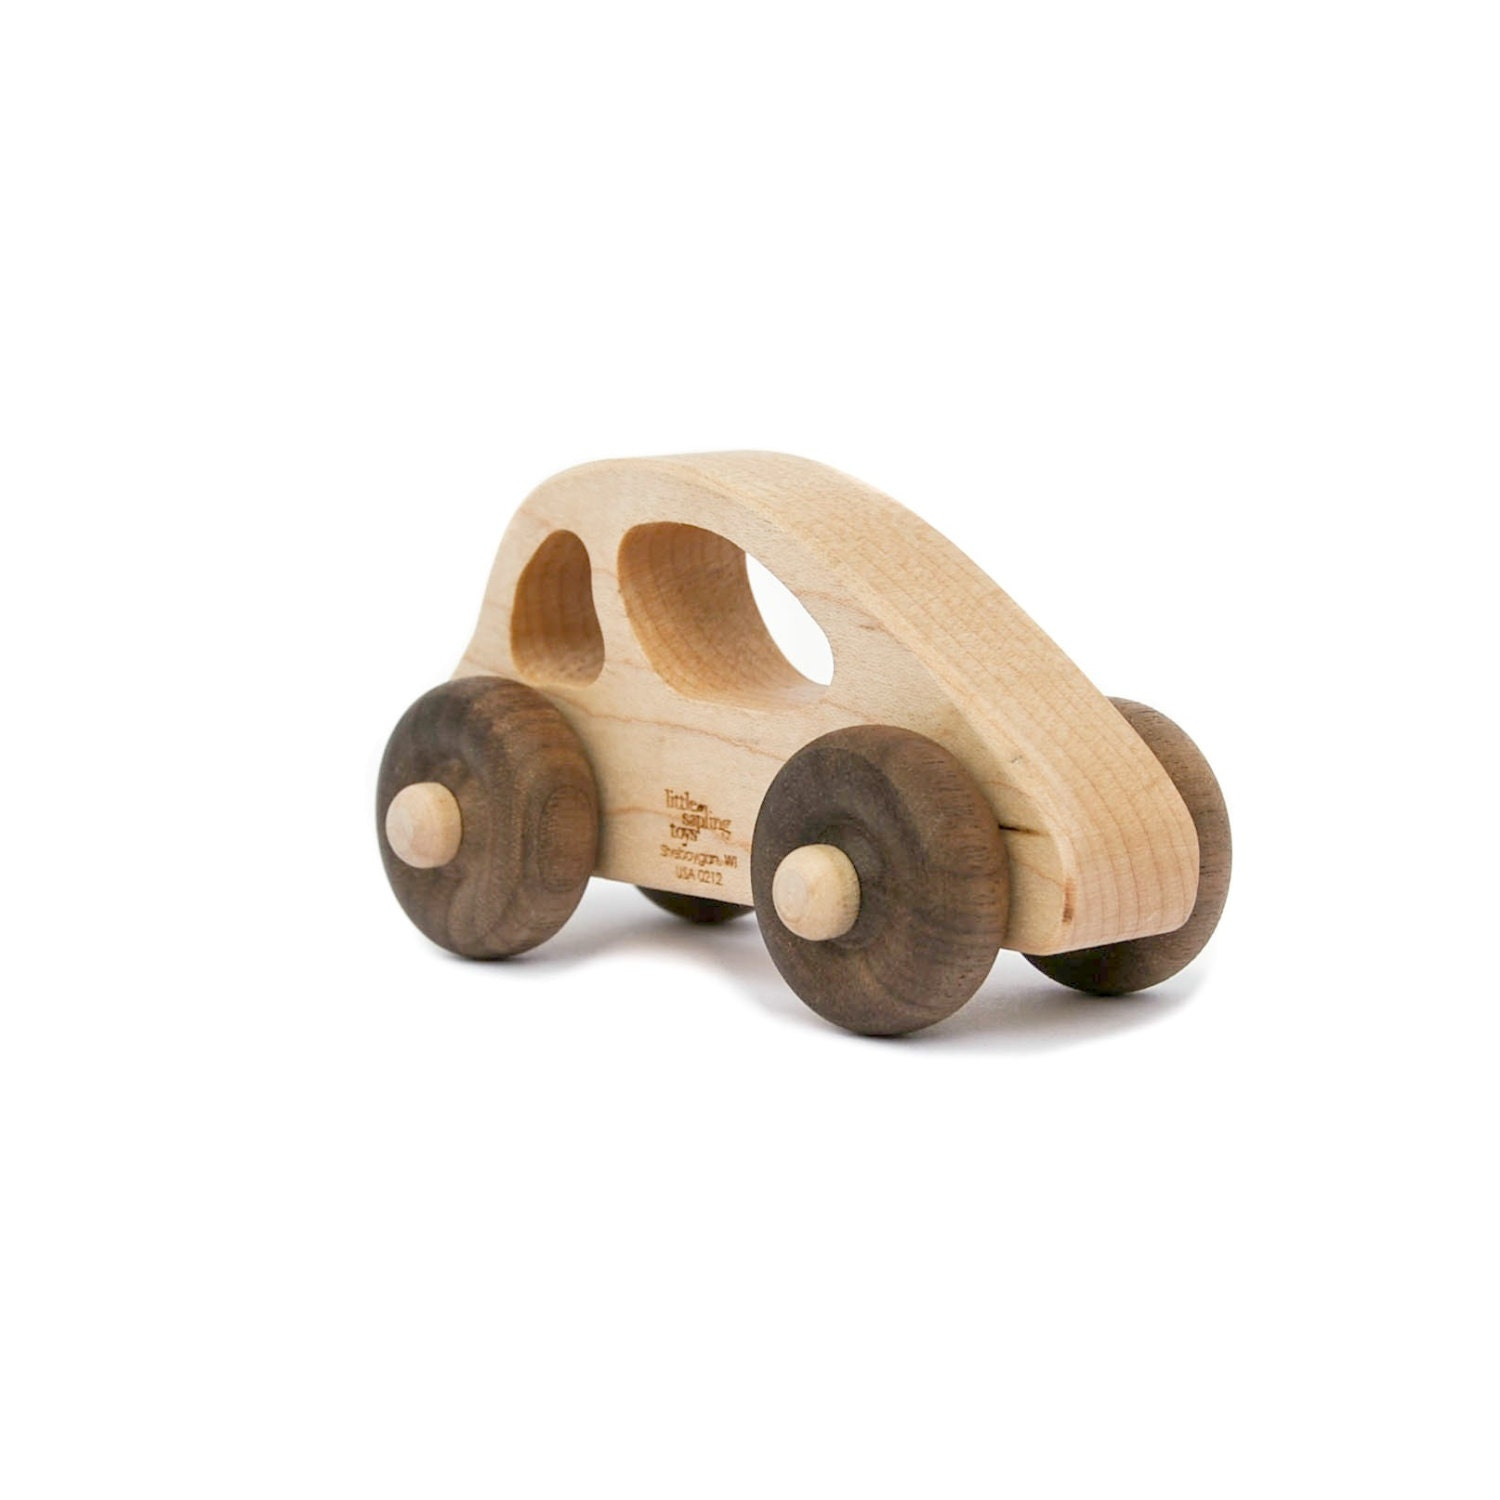 Toys Are Us Wooden Toys : Car wood toy imaginative play handmade wooden